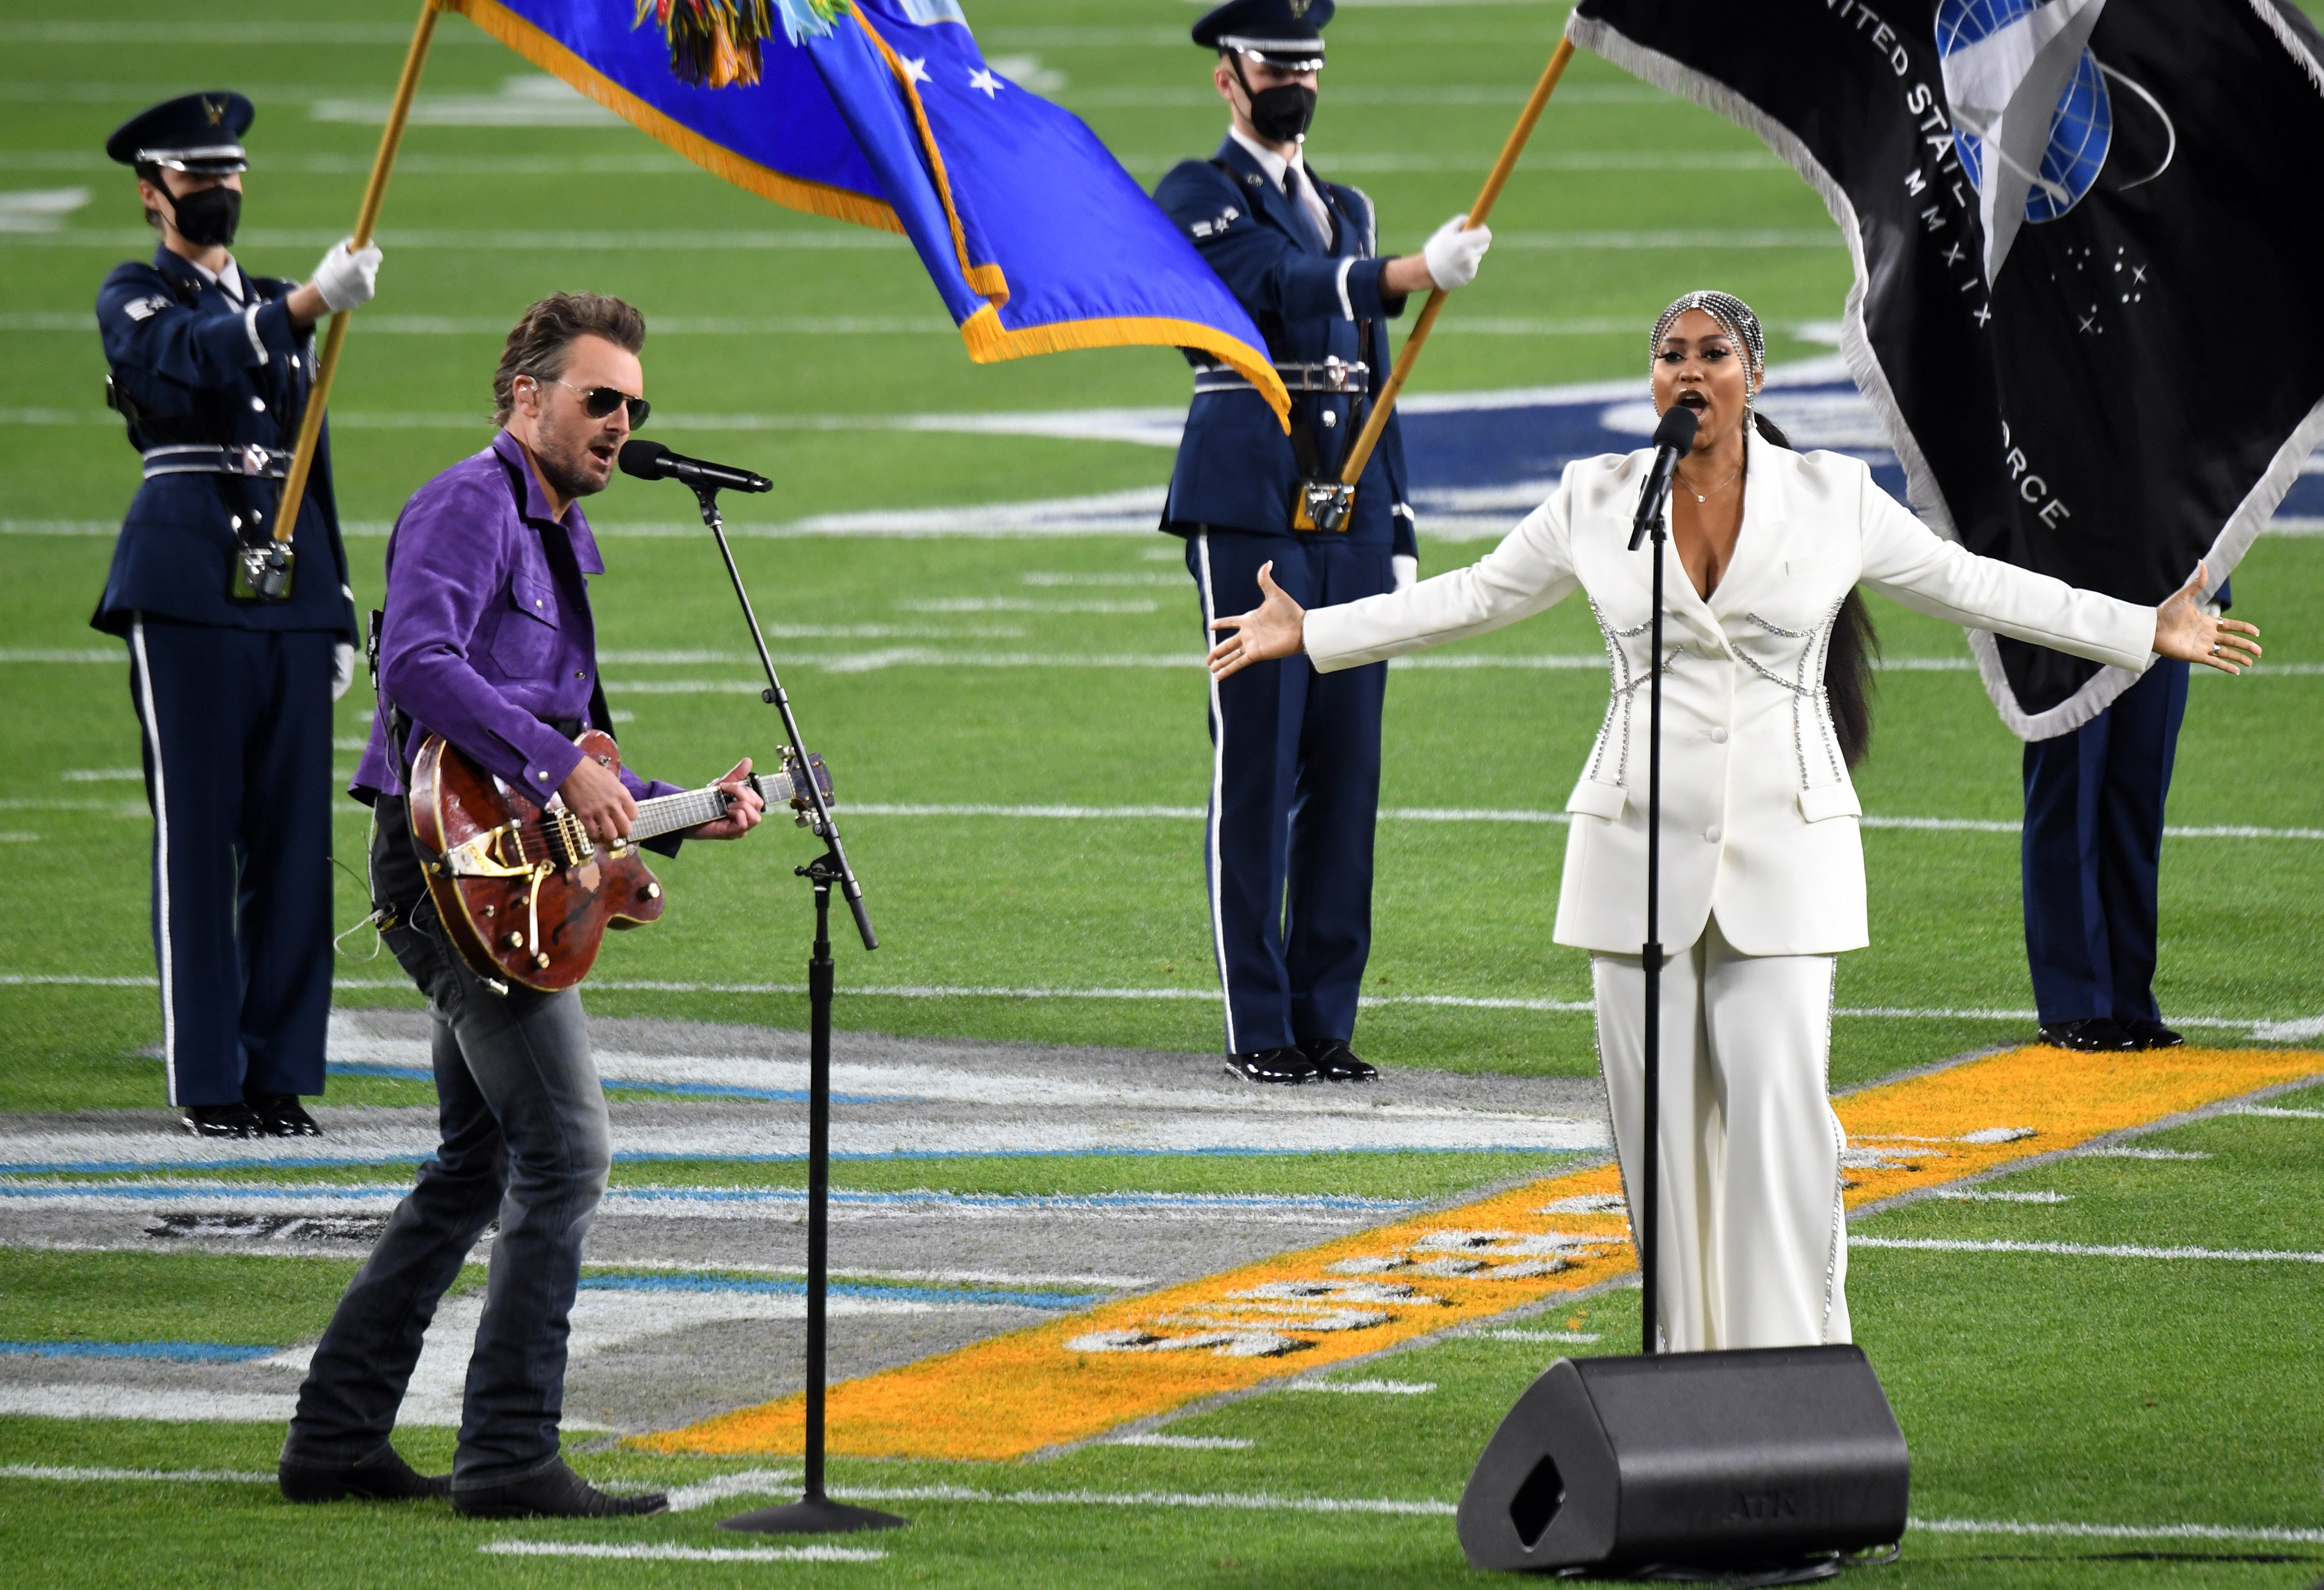 Jazmine Sullivan and Eric Church amazed the crowd with their rendition of The Star-Spangled Banner at the 2021 Superbowl, in Tampa, February, 2021.   Photo: Getty Images.